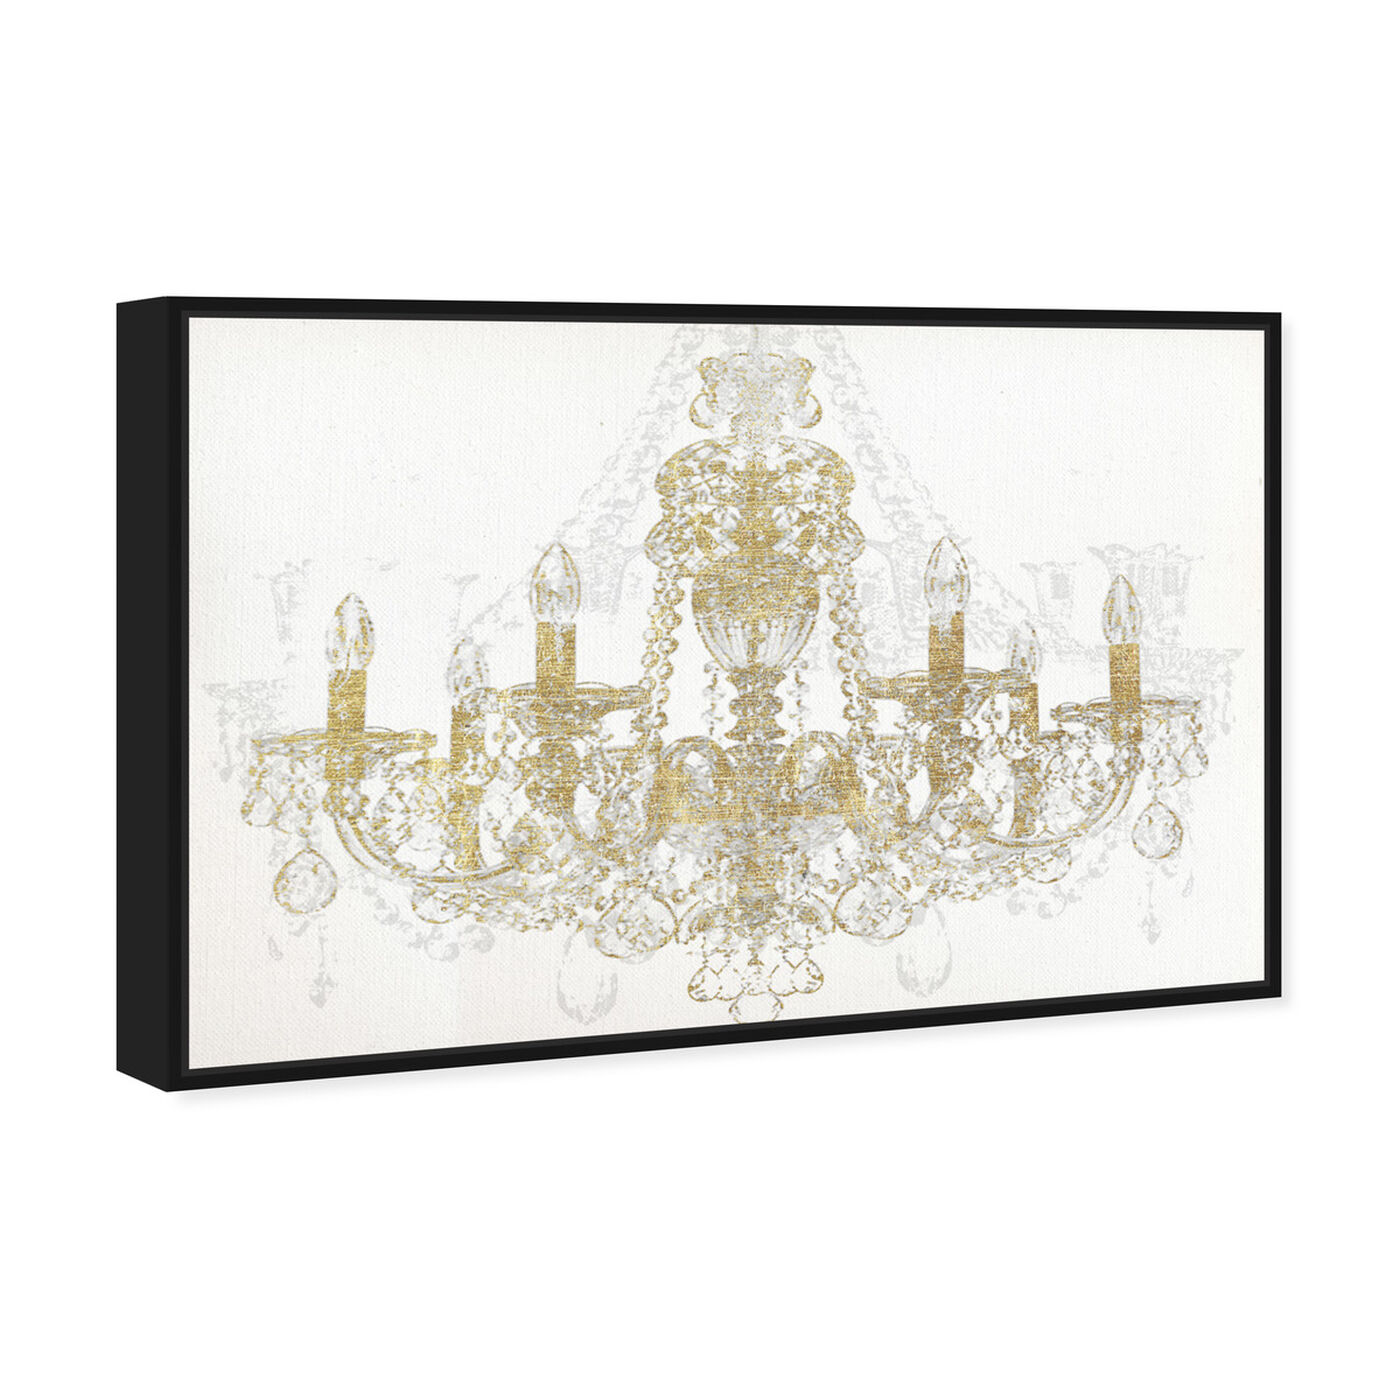 Angled view of Chandelier Diamond featuring fashion and glam and chandeliers art.